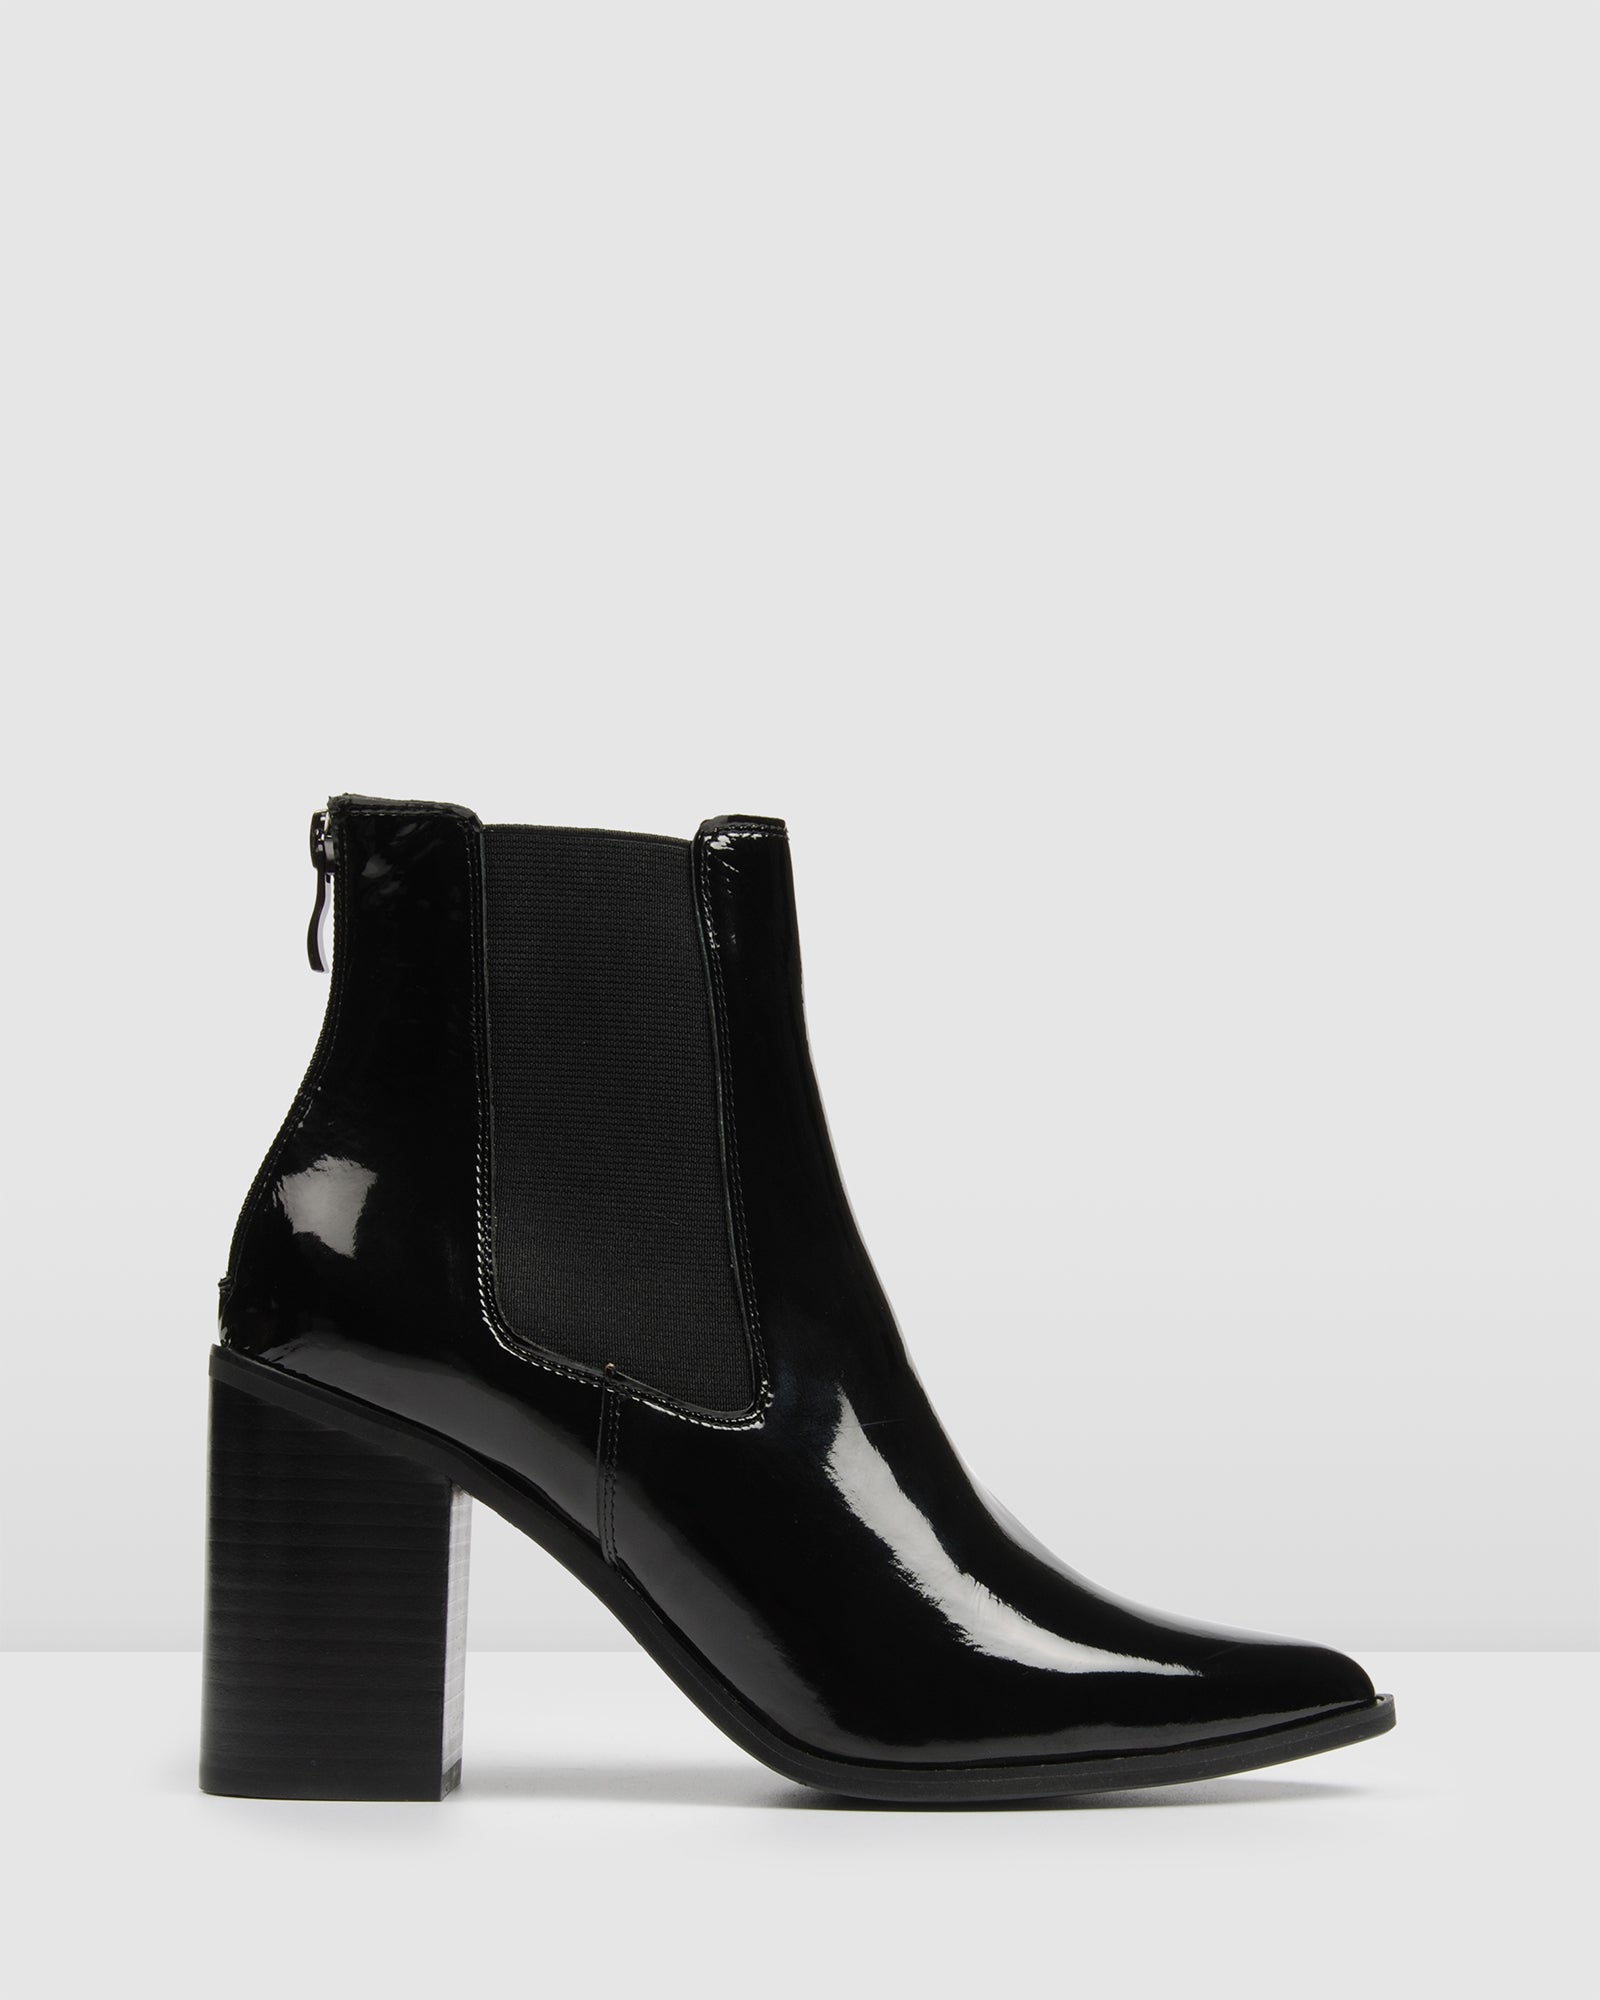 a6bd9bc9f7d Lover High Ankle Boots Black Patent $259.95. Add ...